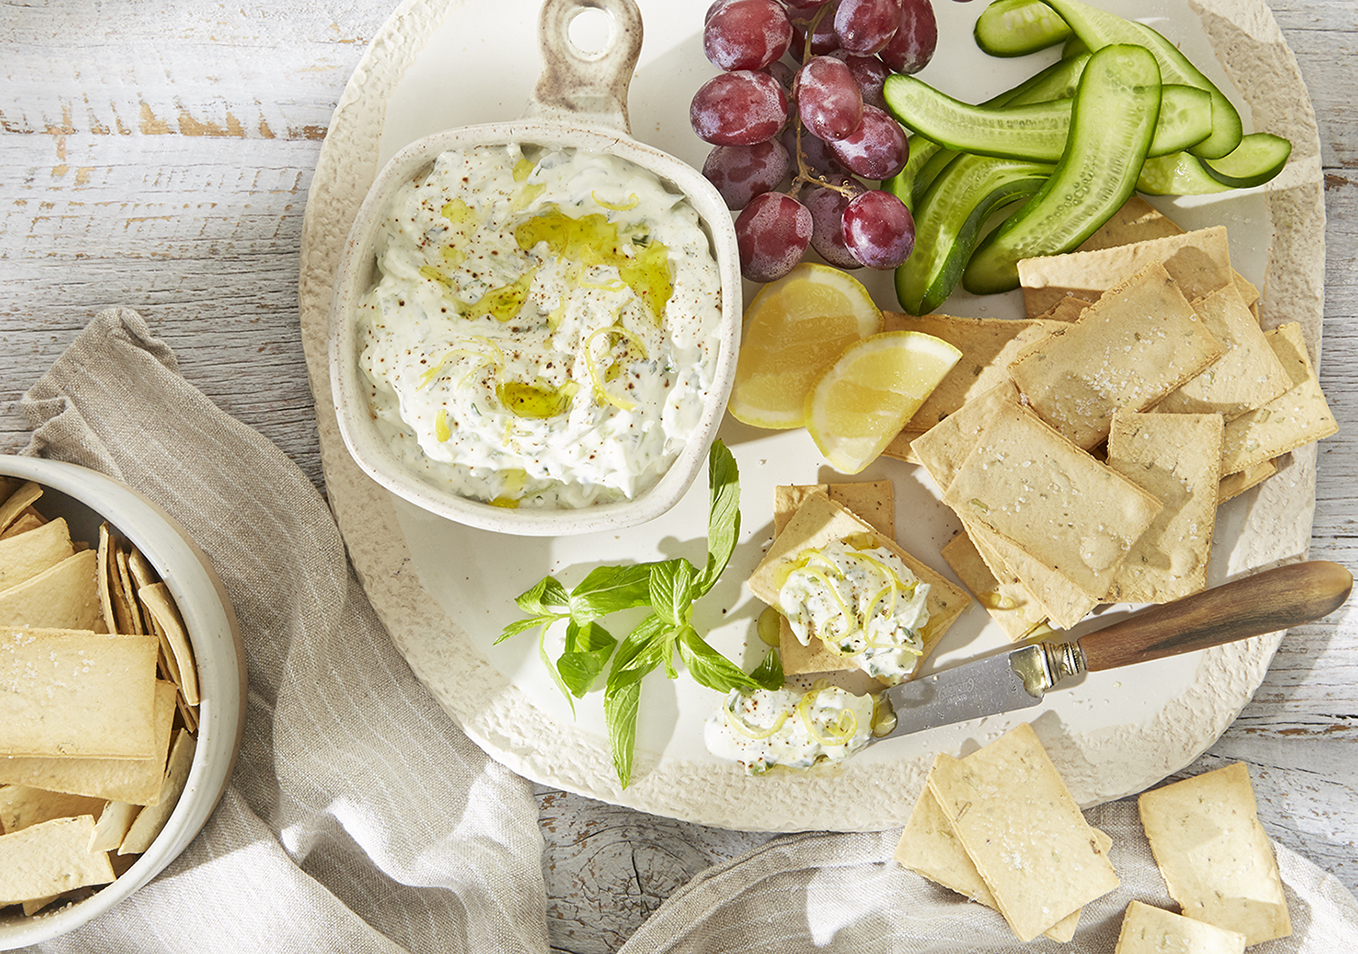 WEB only LavoshBites CO SS with Tzatziki Dip platter